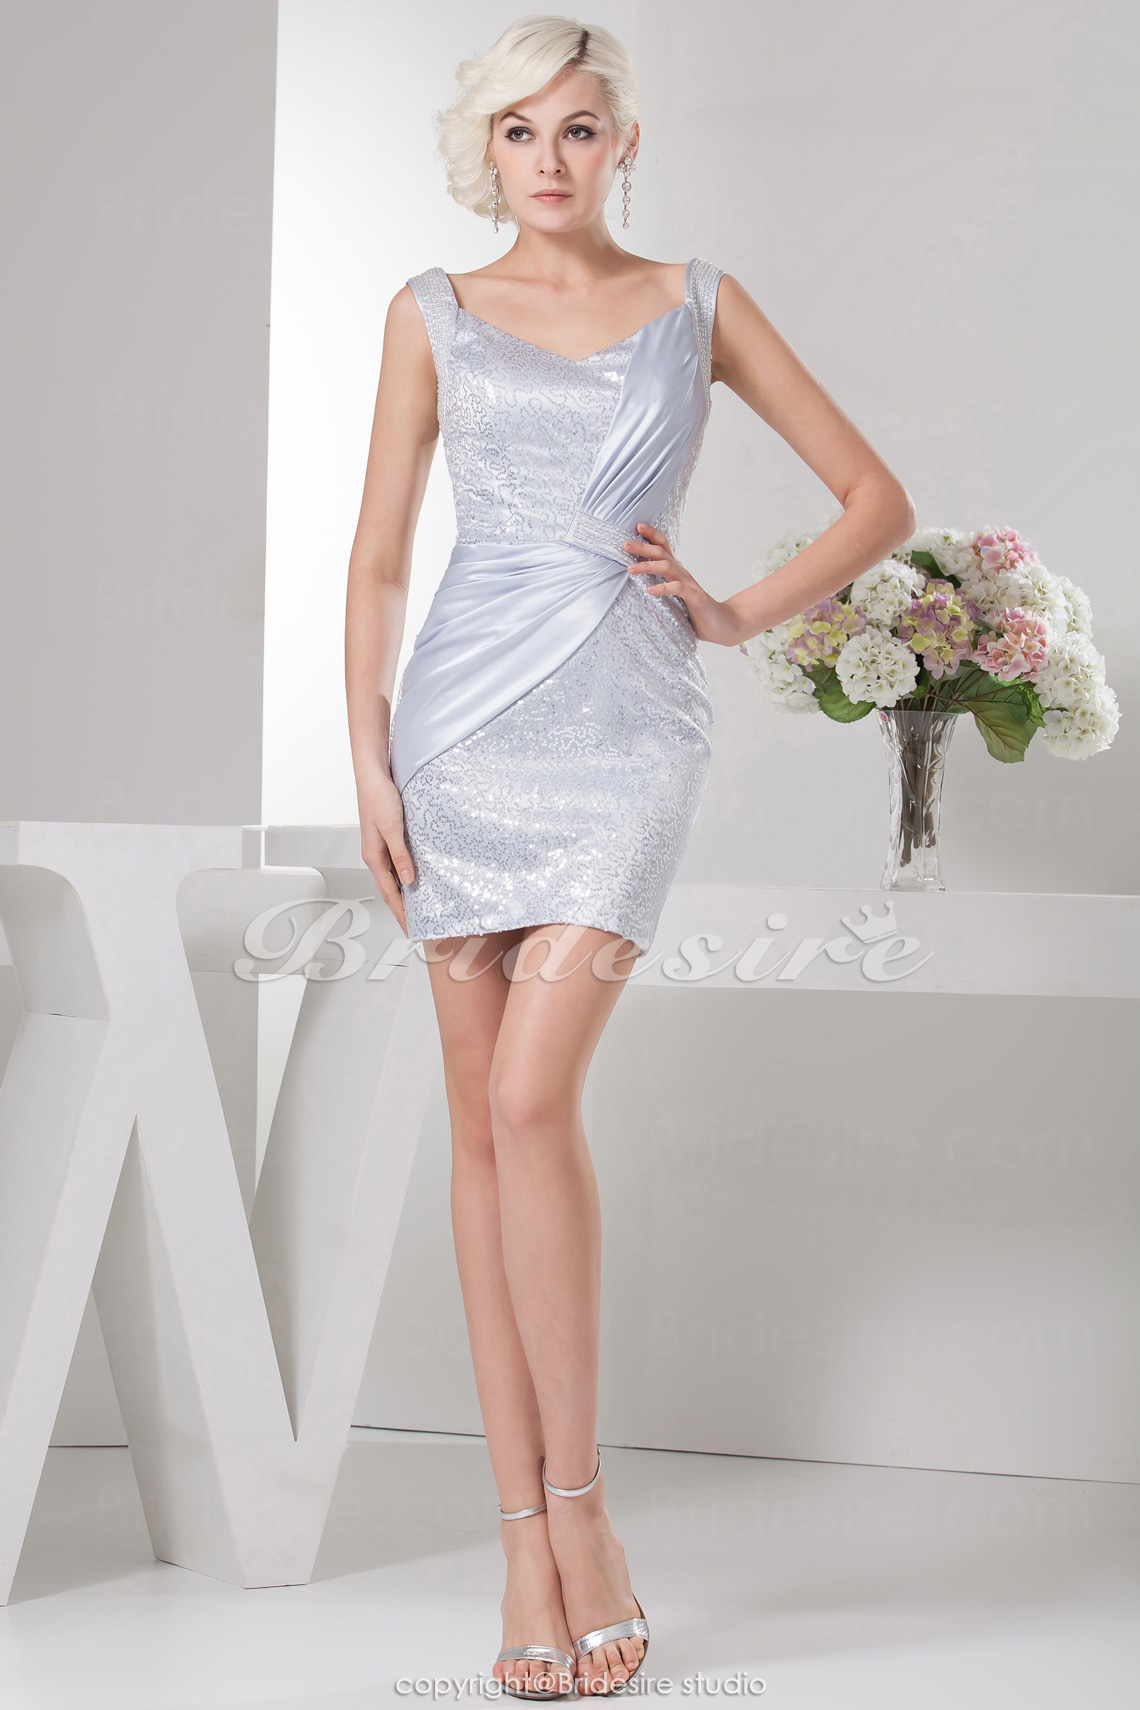 Sheath/Column Square Short/Mini Sleeveless Elastic Silk-like Satin Satin Dress